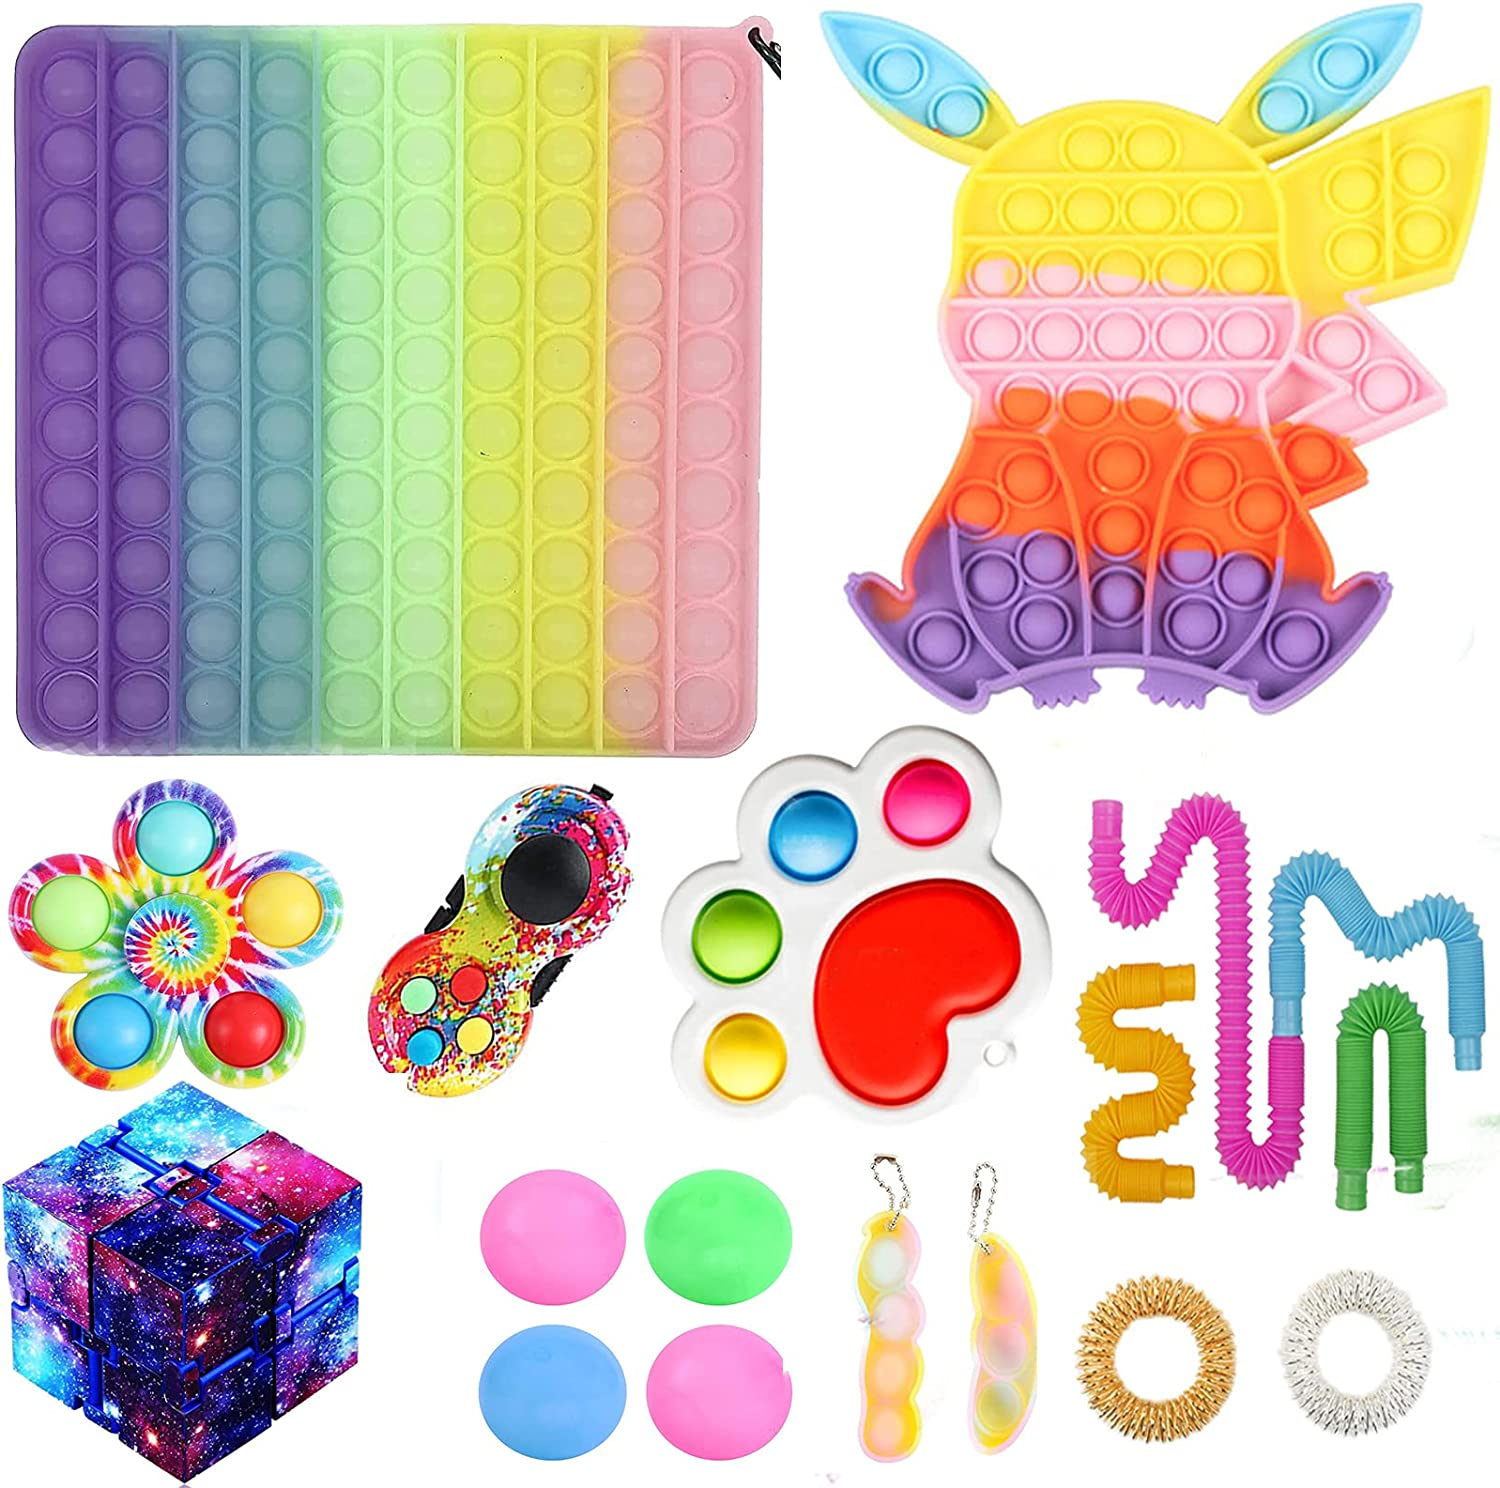 14 15 24 30 Pieces 5 popular Toys Kit Floral Toy Push St Square sold out Bubble